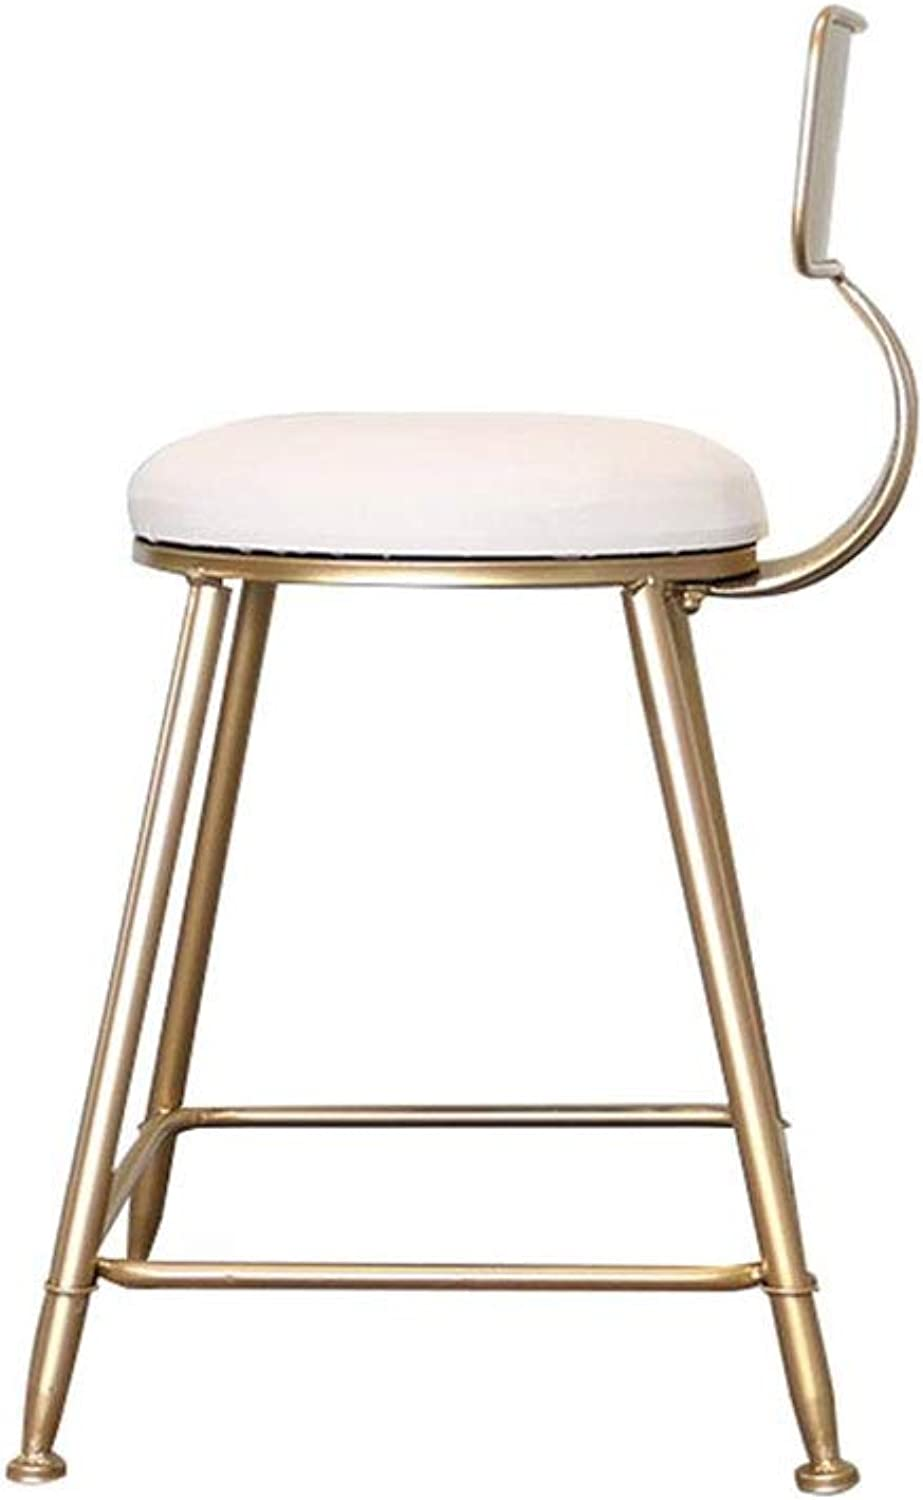 LQQGXL Nordic Wrought Iron bar Stool, Simple Home Chair Creative Dining Chair, (color   White, Size   45CM)